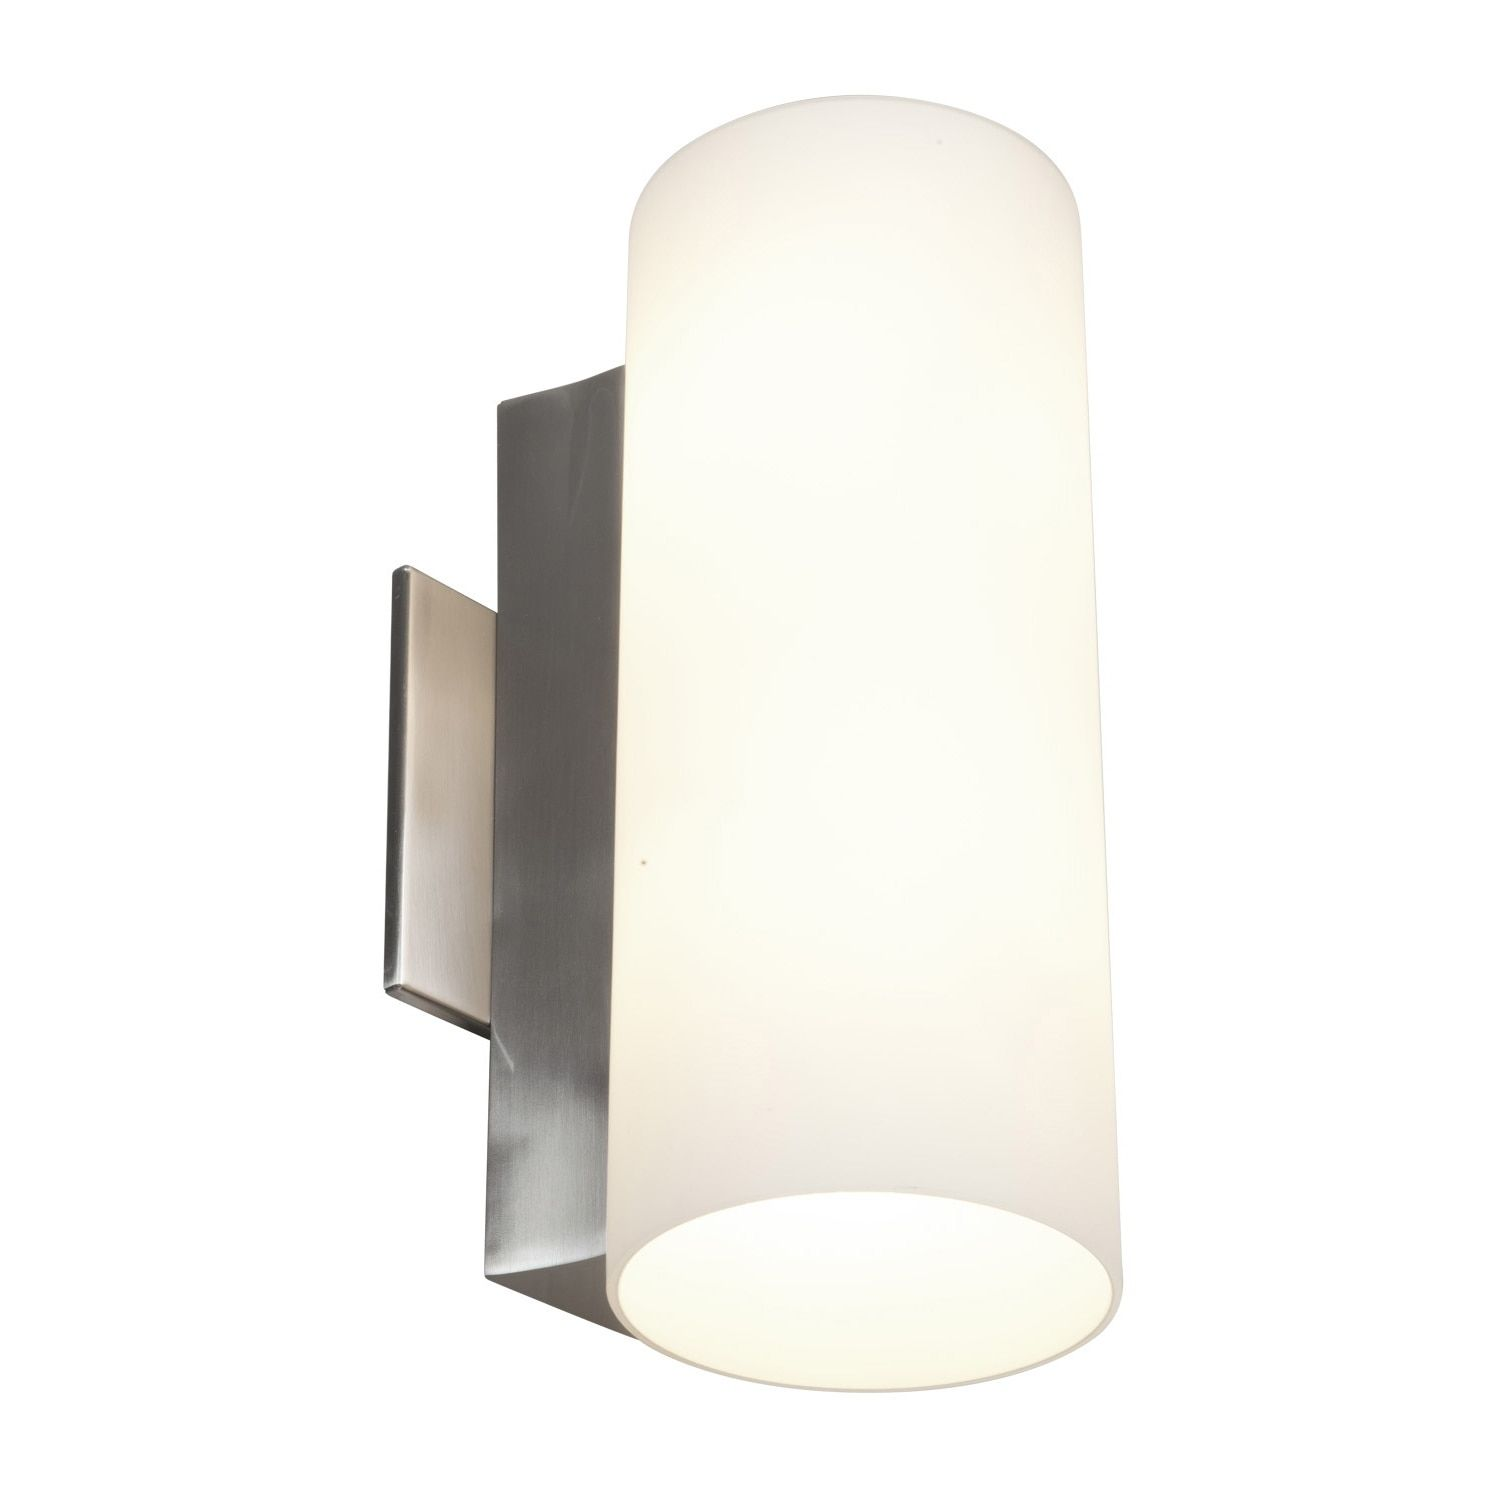 Bathroom Light Sconces With Switch access taboo 2-light brushed steel 11.8-inch wall sconce (brushed